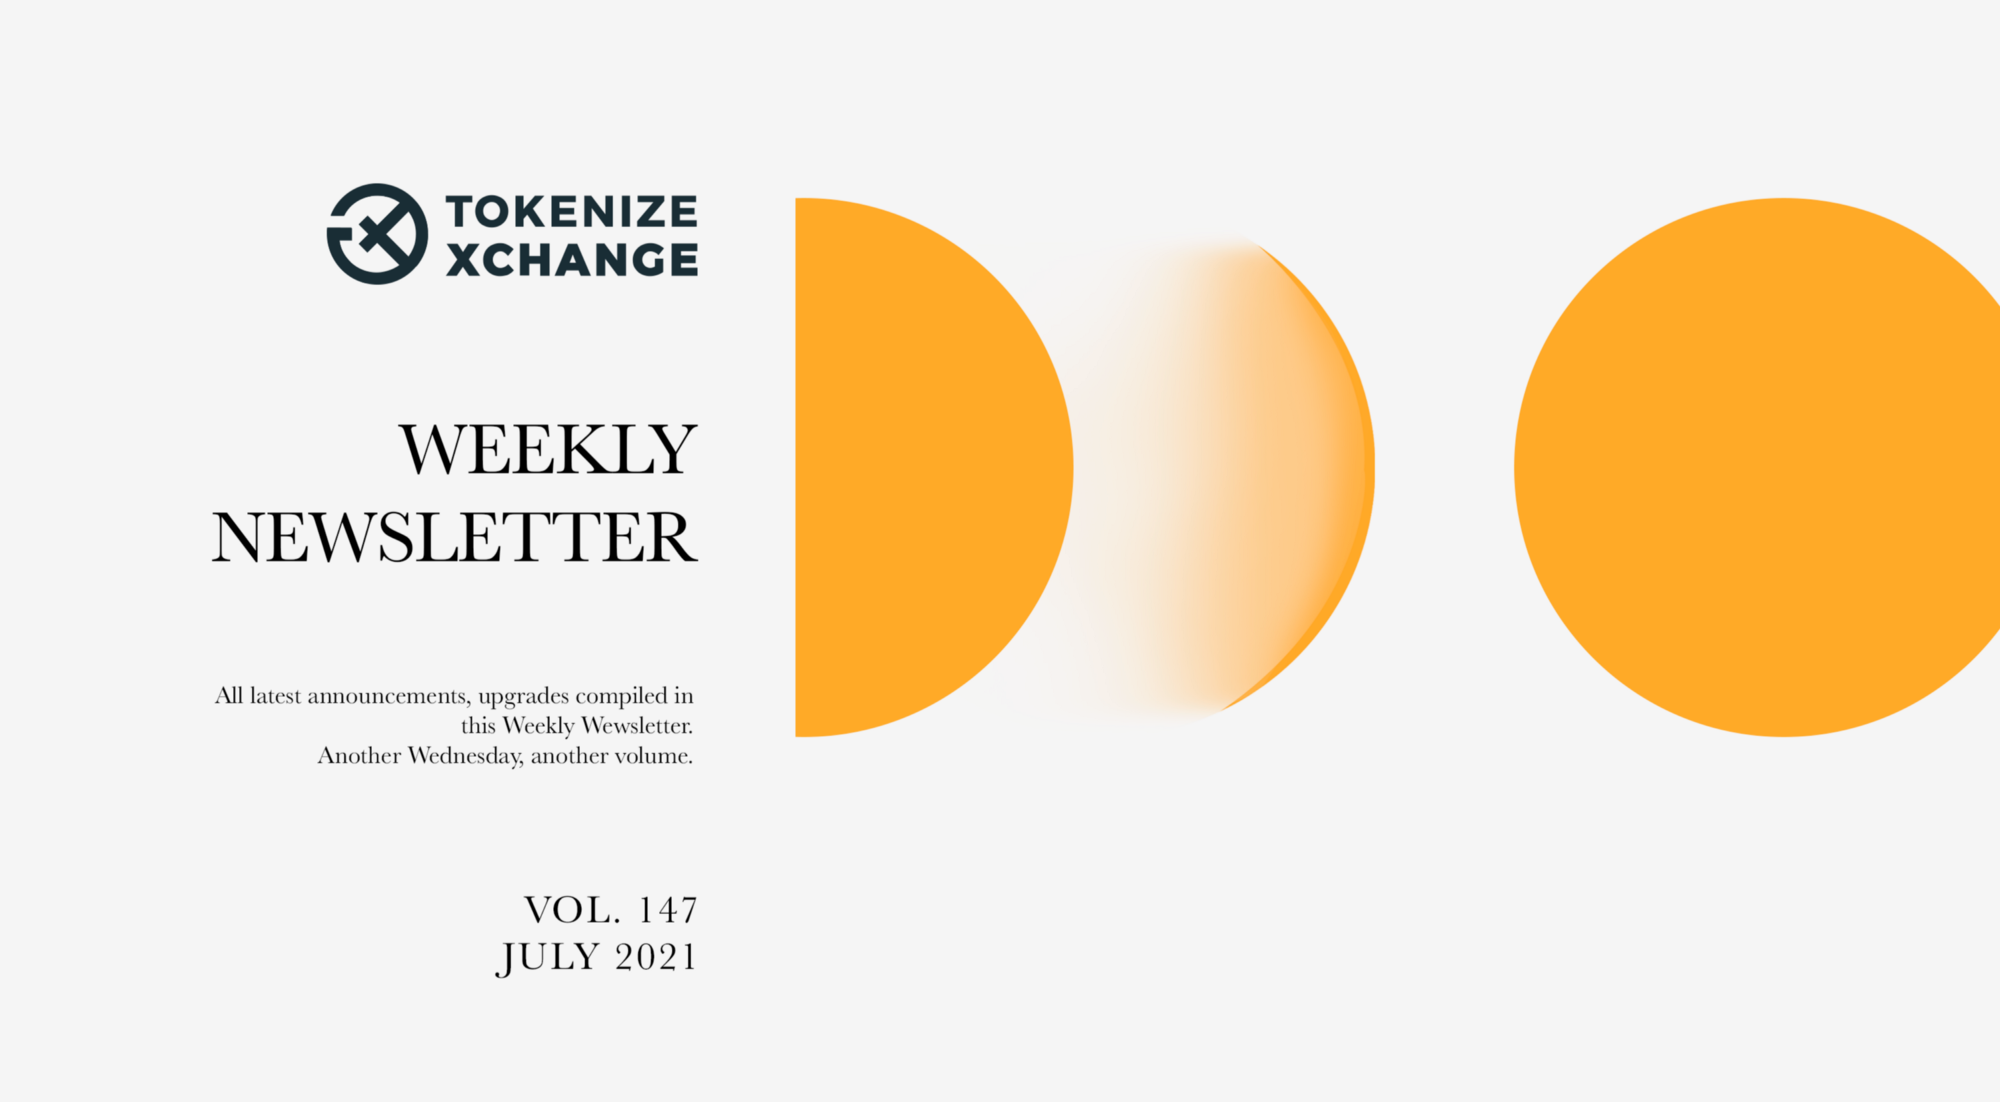 The Newsletter by Tokenize Xchange (Vol.147| July 2021)